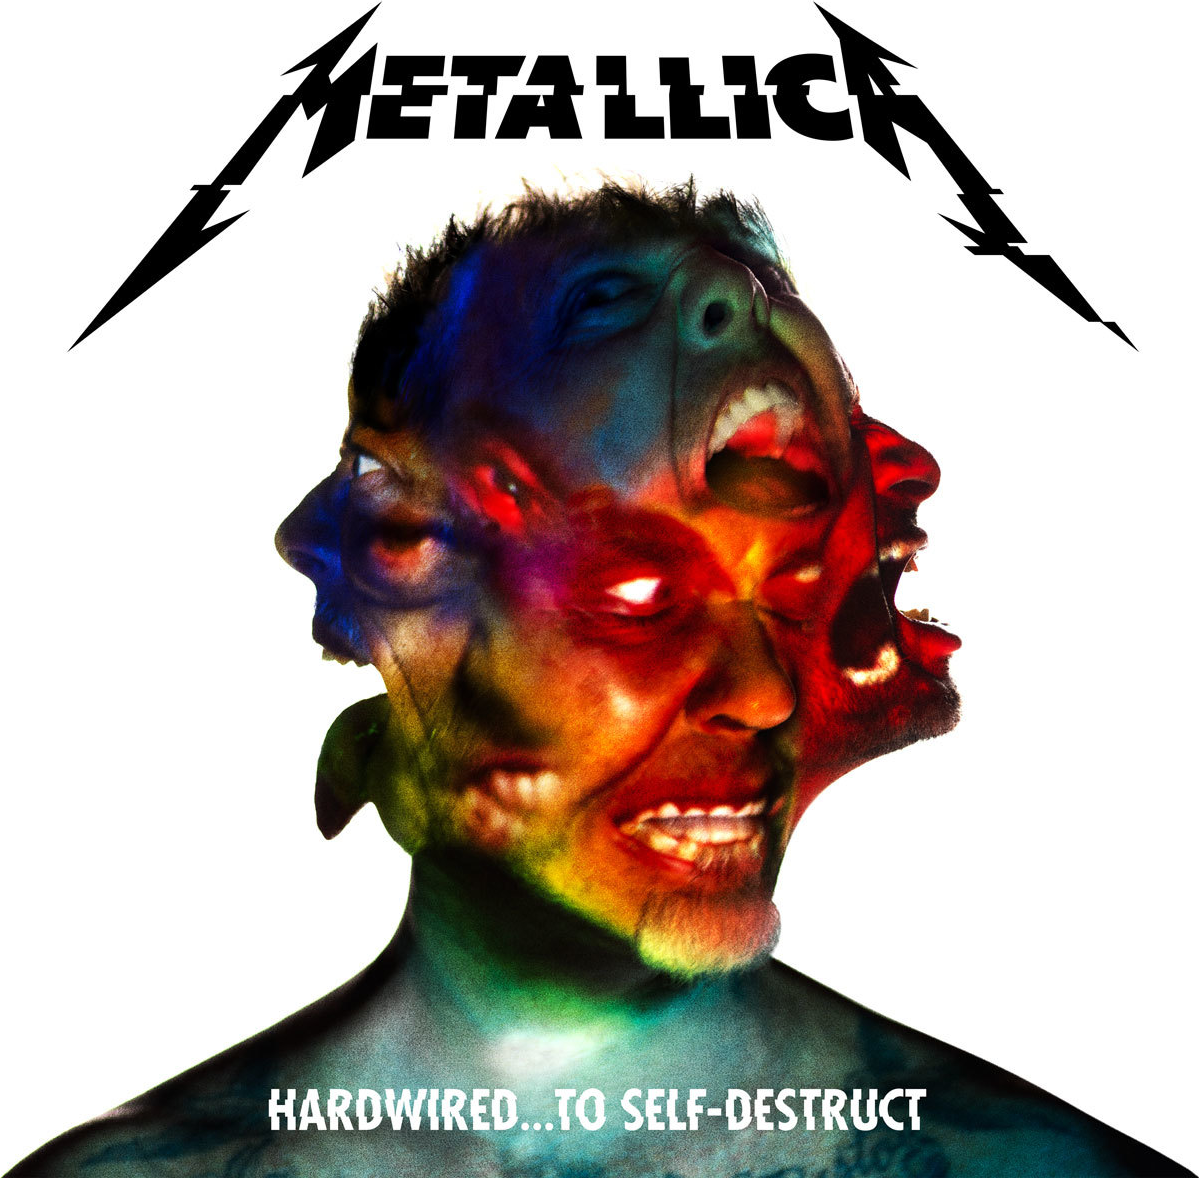 Metallica Hardwired... To Self-Destruct font